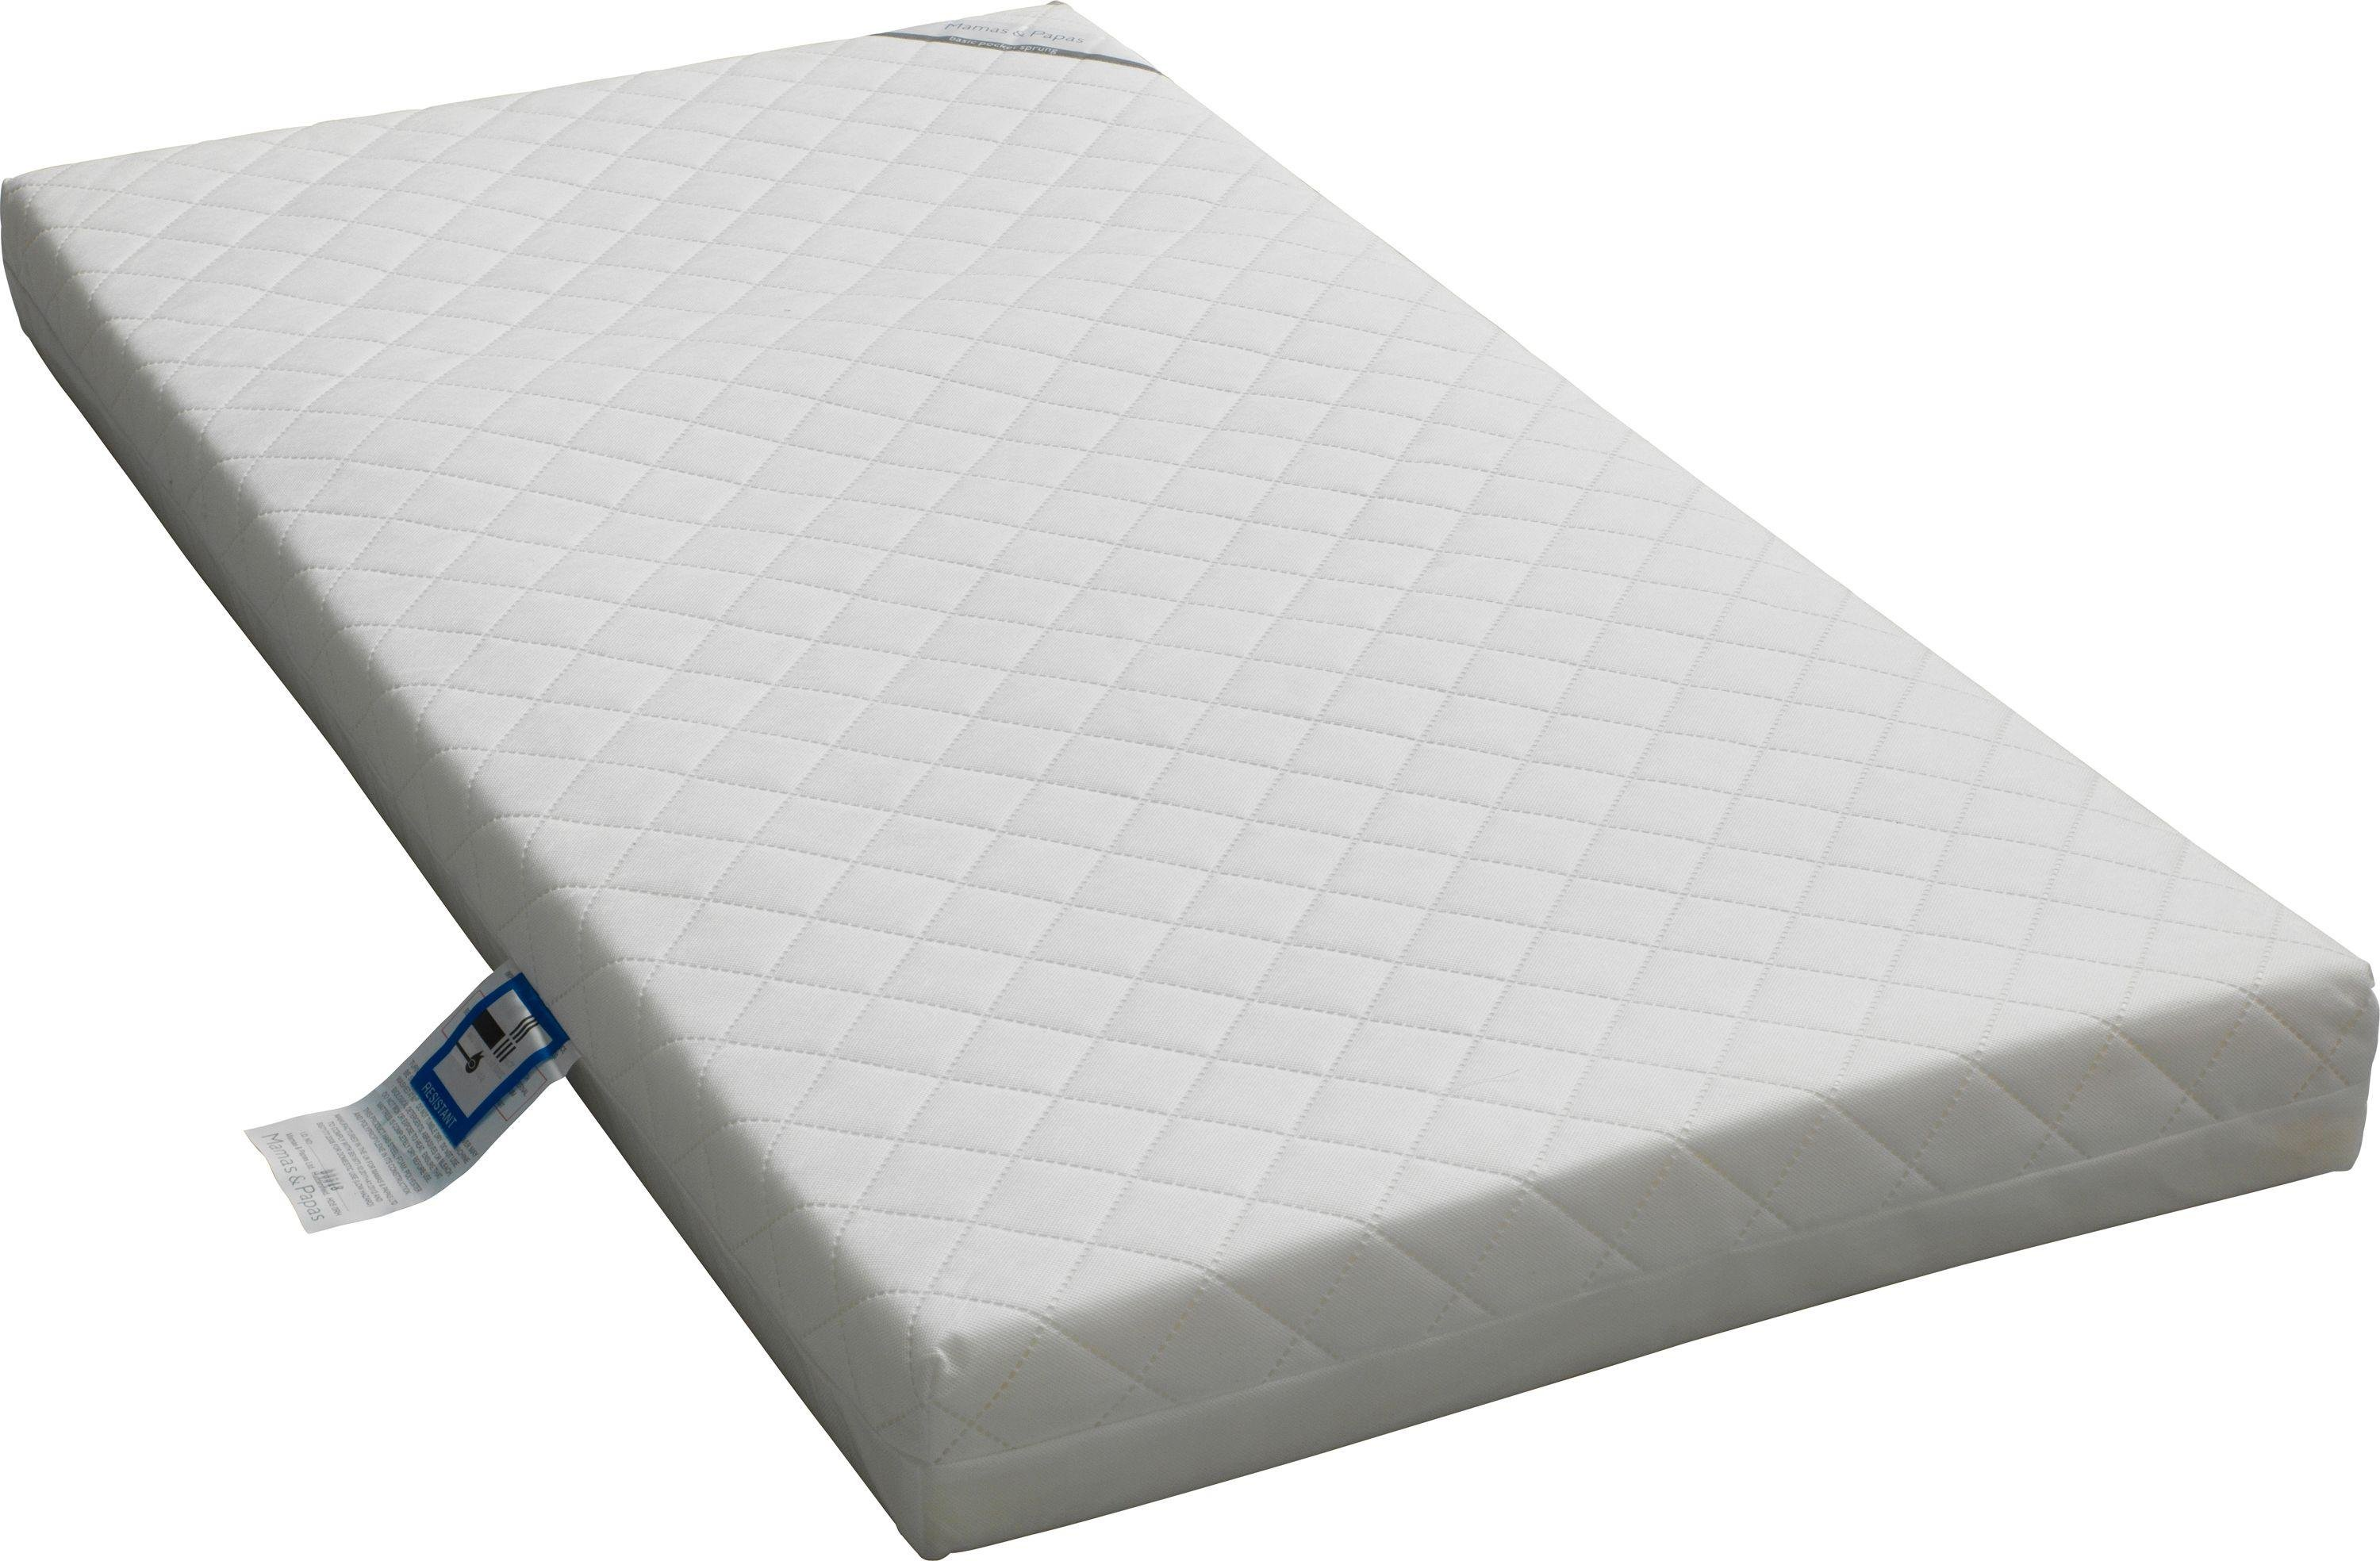 Rocking crib for sale doncaster - Mamas Papas Pocket Sprung Mattress 139x69cm